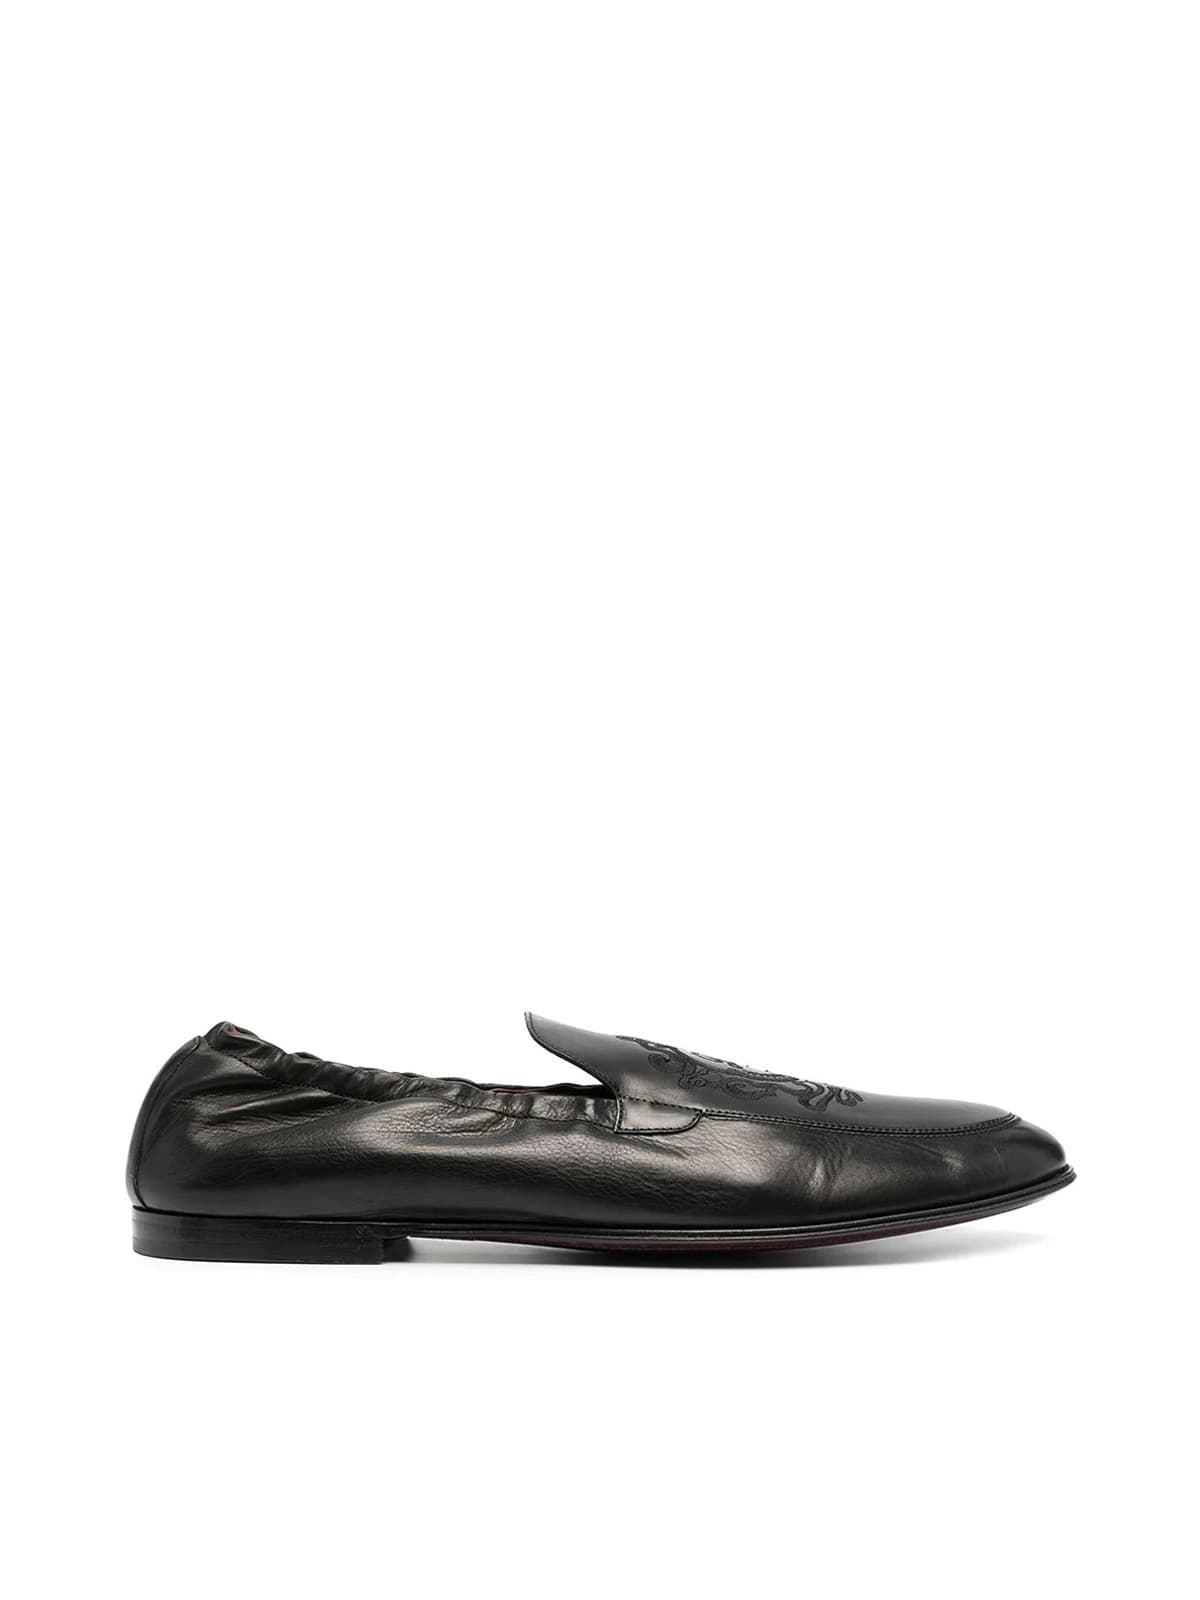 Dolce & Gabbana Loafers PLUME EMBROIDERED